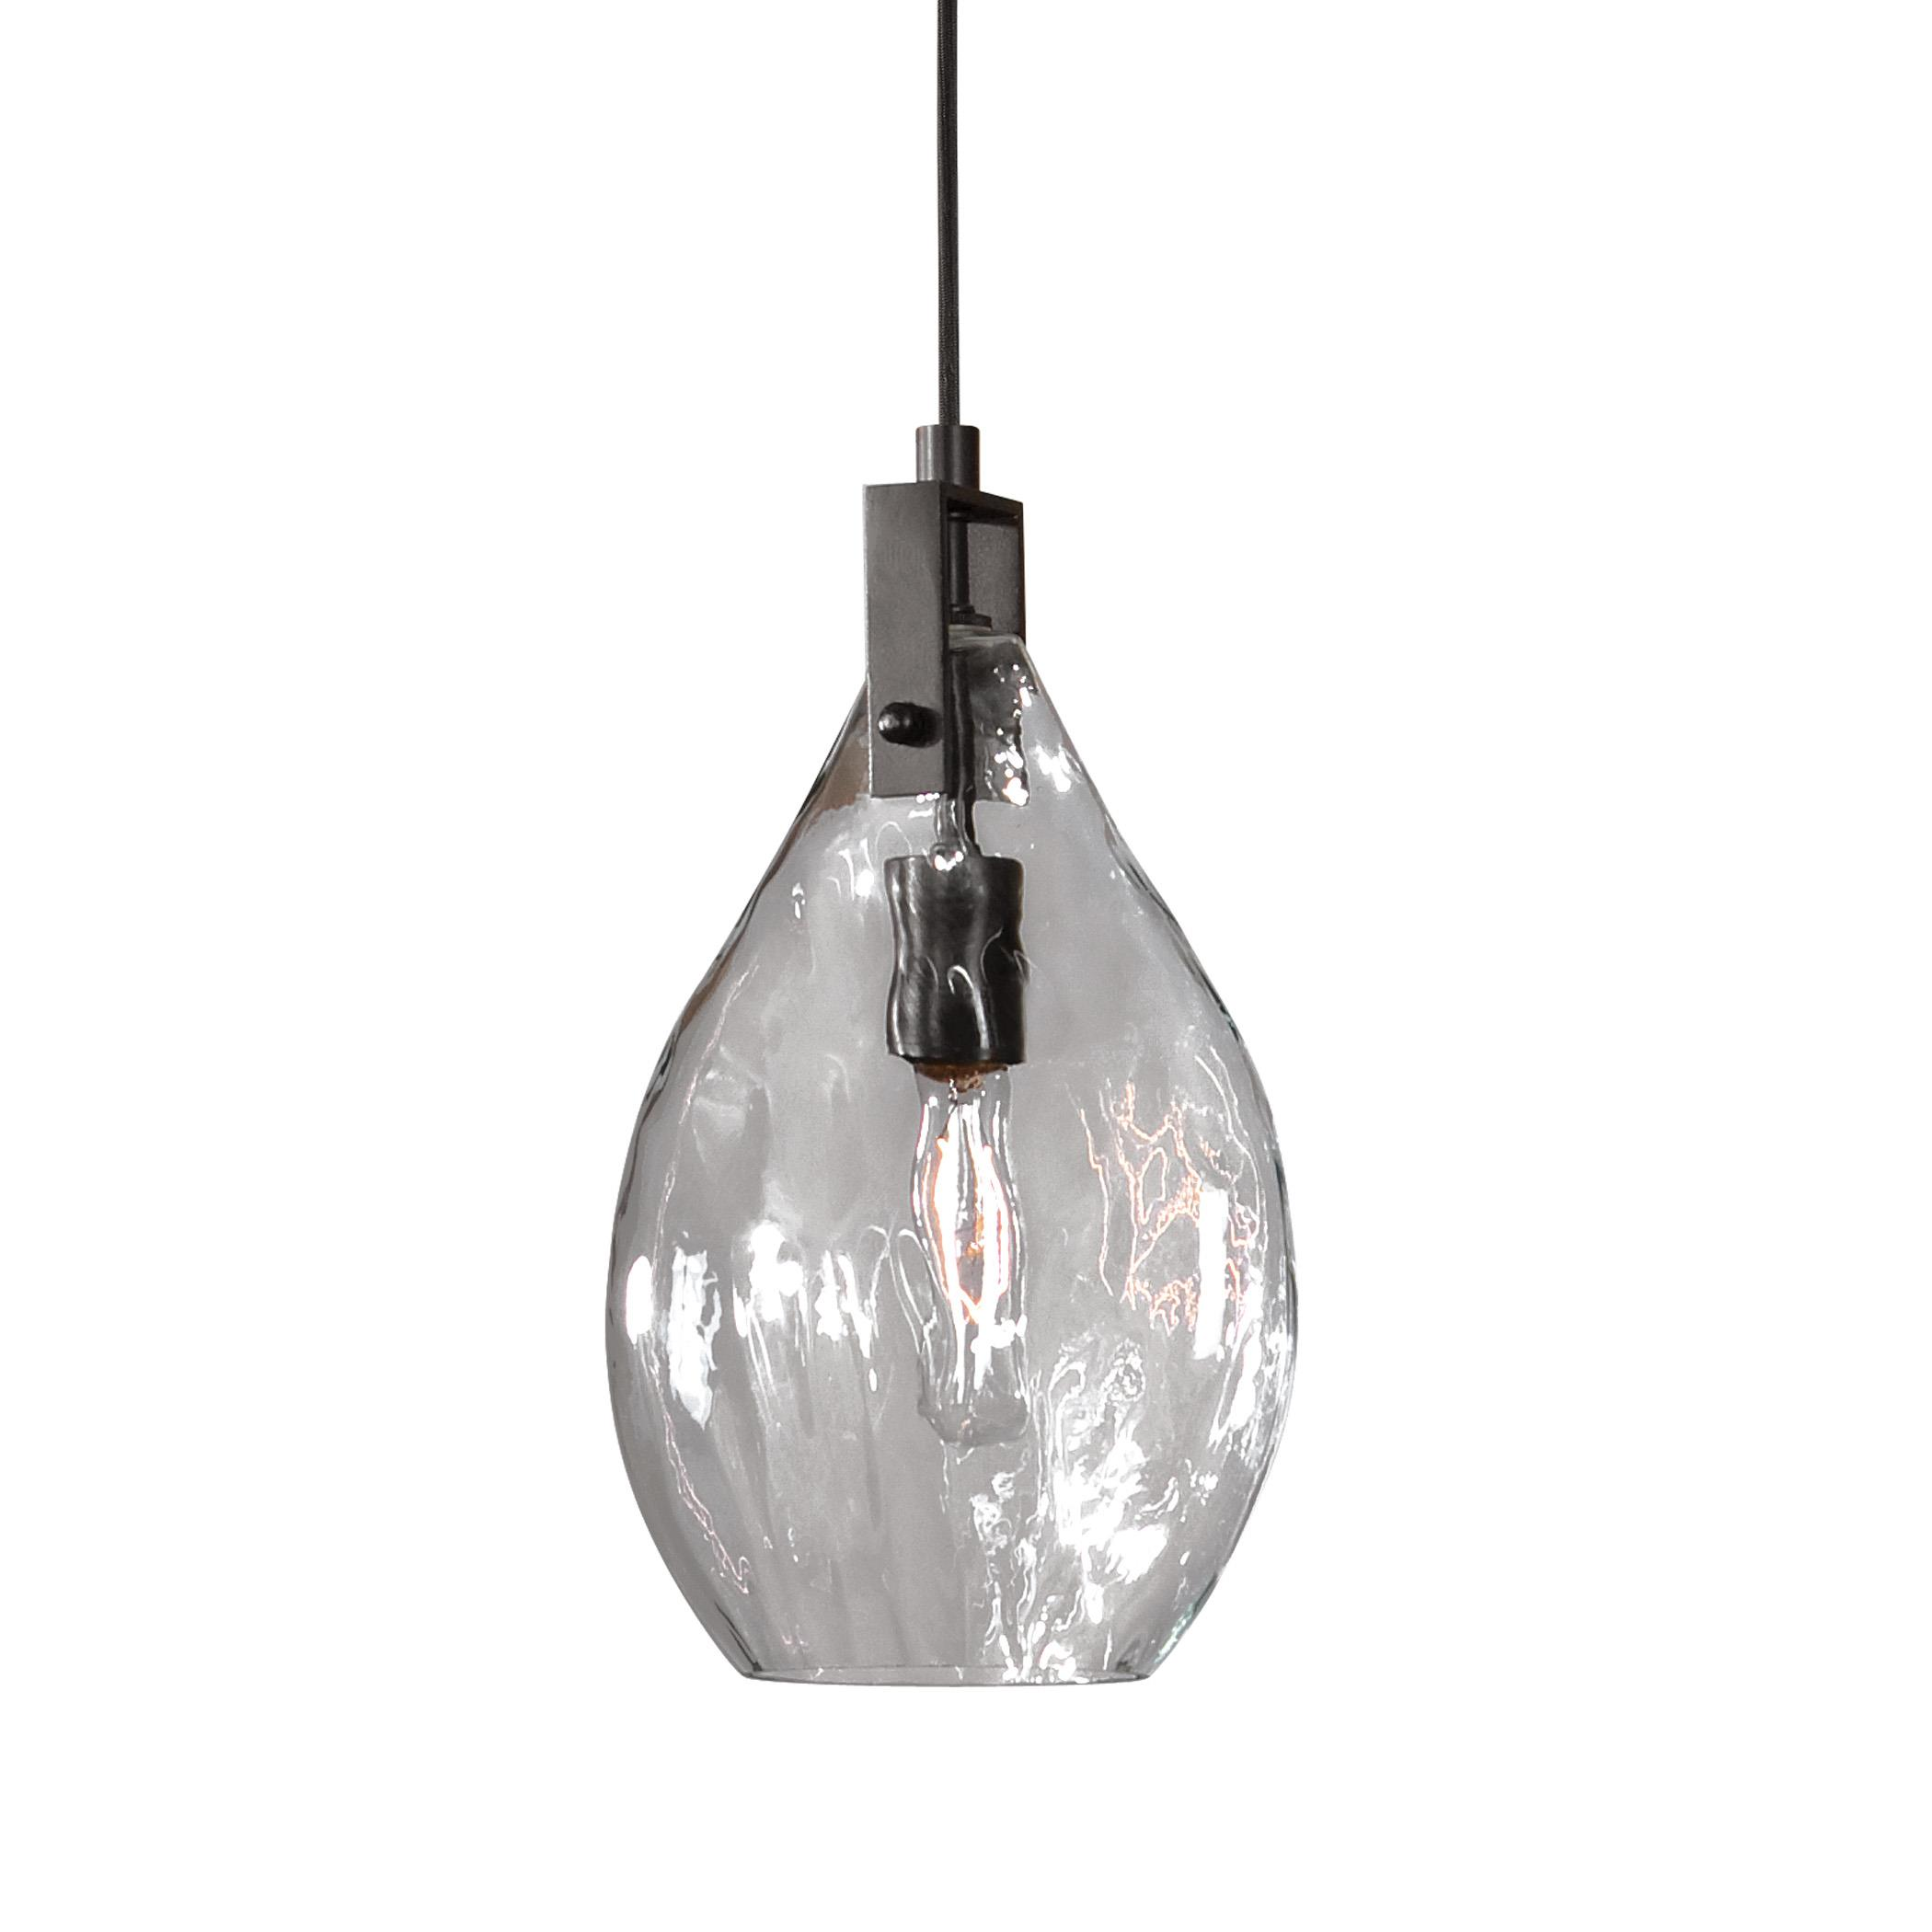 Lighting Fixtures - Pendant Lights Campester 1 Light Watered Glass Mini Pendant by Uttermost at Mueller Furniture